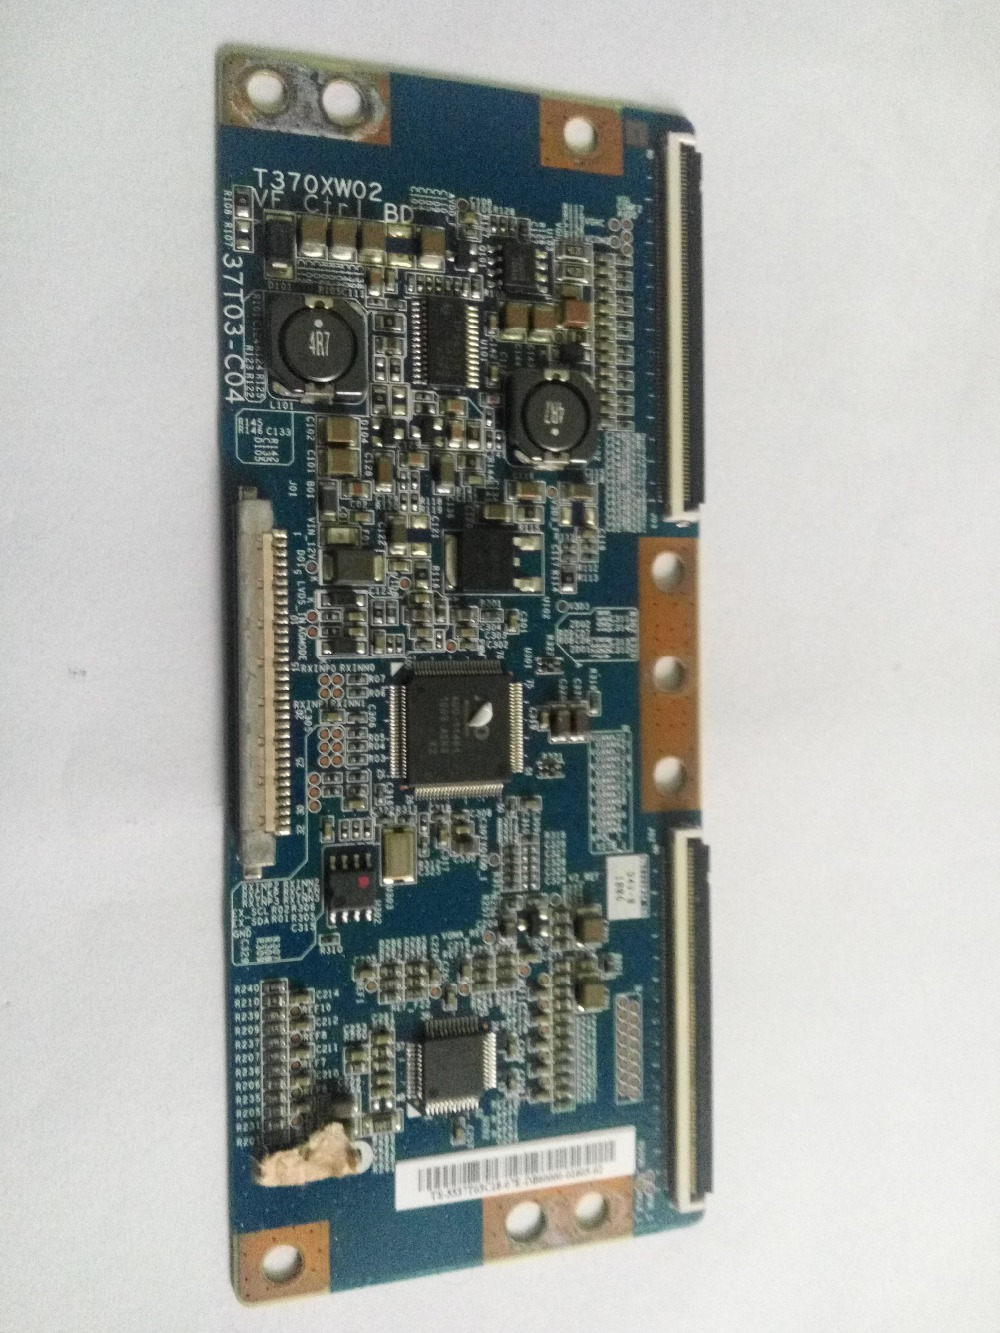 T370XW02 VF 37T03-C04 LCD Board Logic Board FOR LT37710 LT37510 T-CON Connect With Connect Board